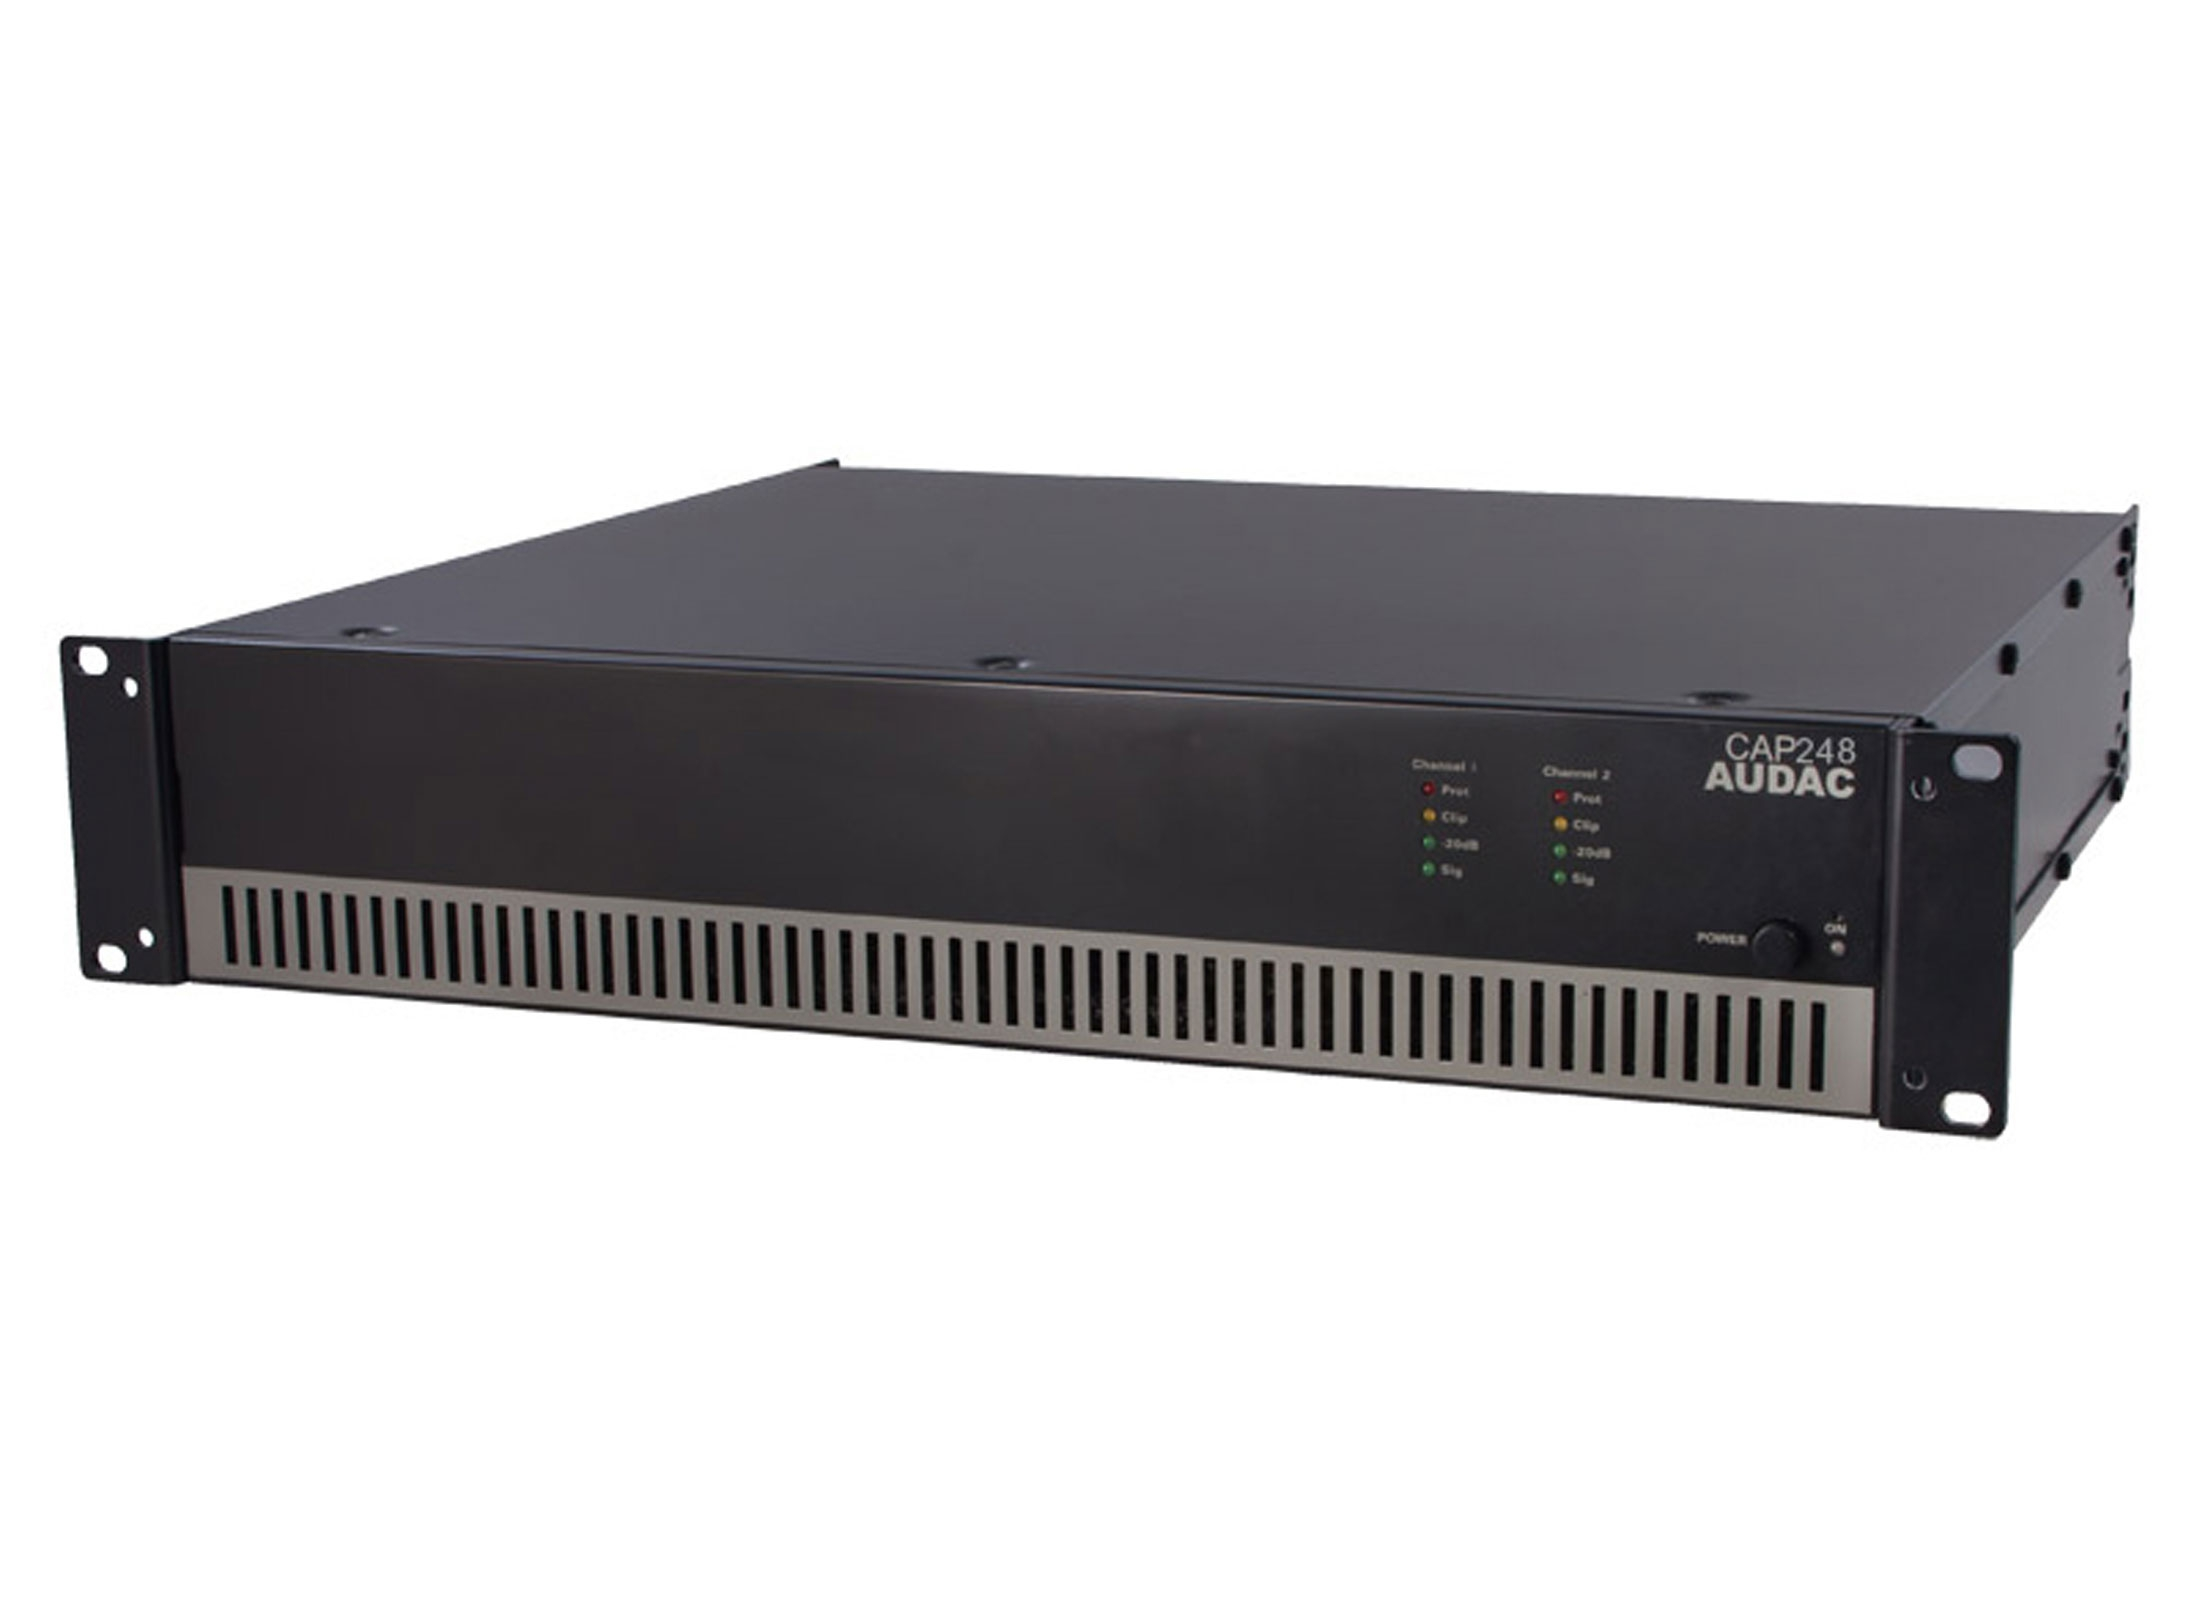 Audac CAP 248 ELA Amplifier Online At Low Prices At Huss Light & Sound